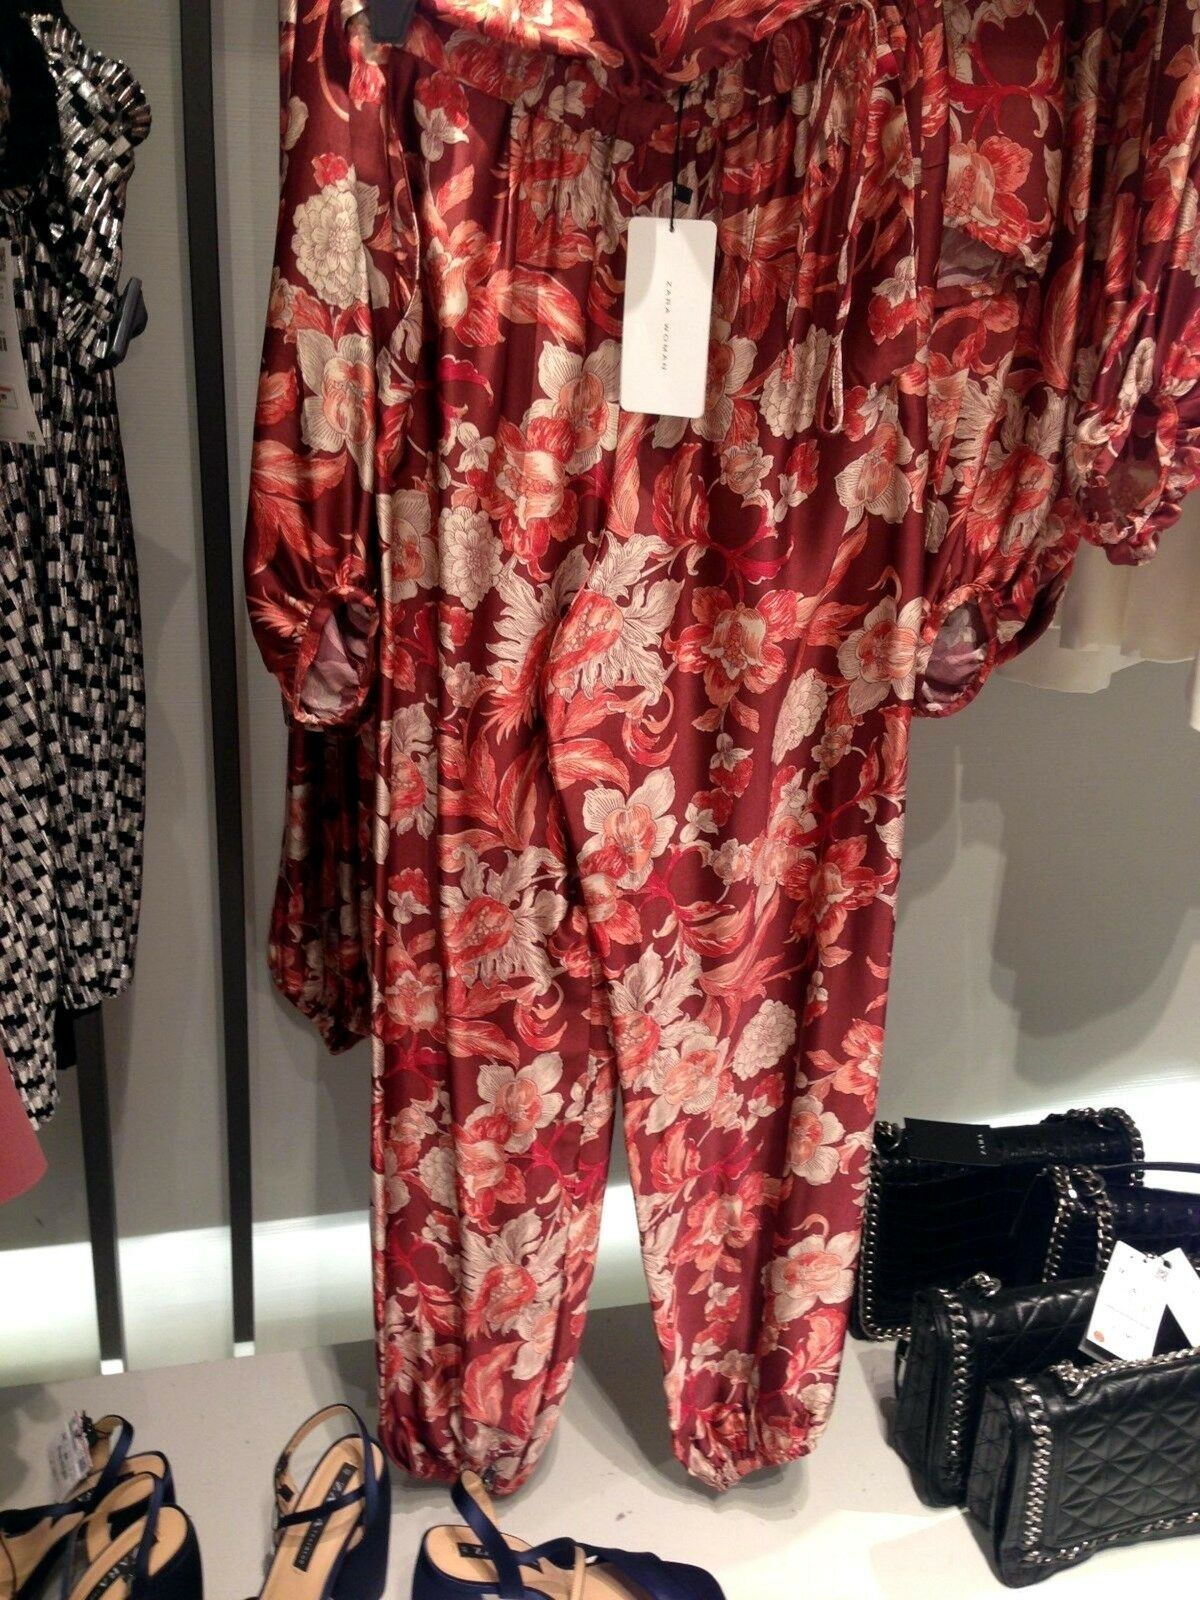 ZARA FLORAL PRINT VOLUMINOUS VOLUMINOUS VOLUMINOUS TOP & TROUSERS CO-ORD 2 PCS SET M 10 US 75df6c